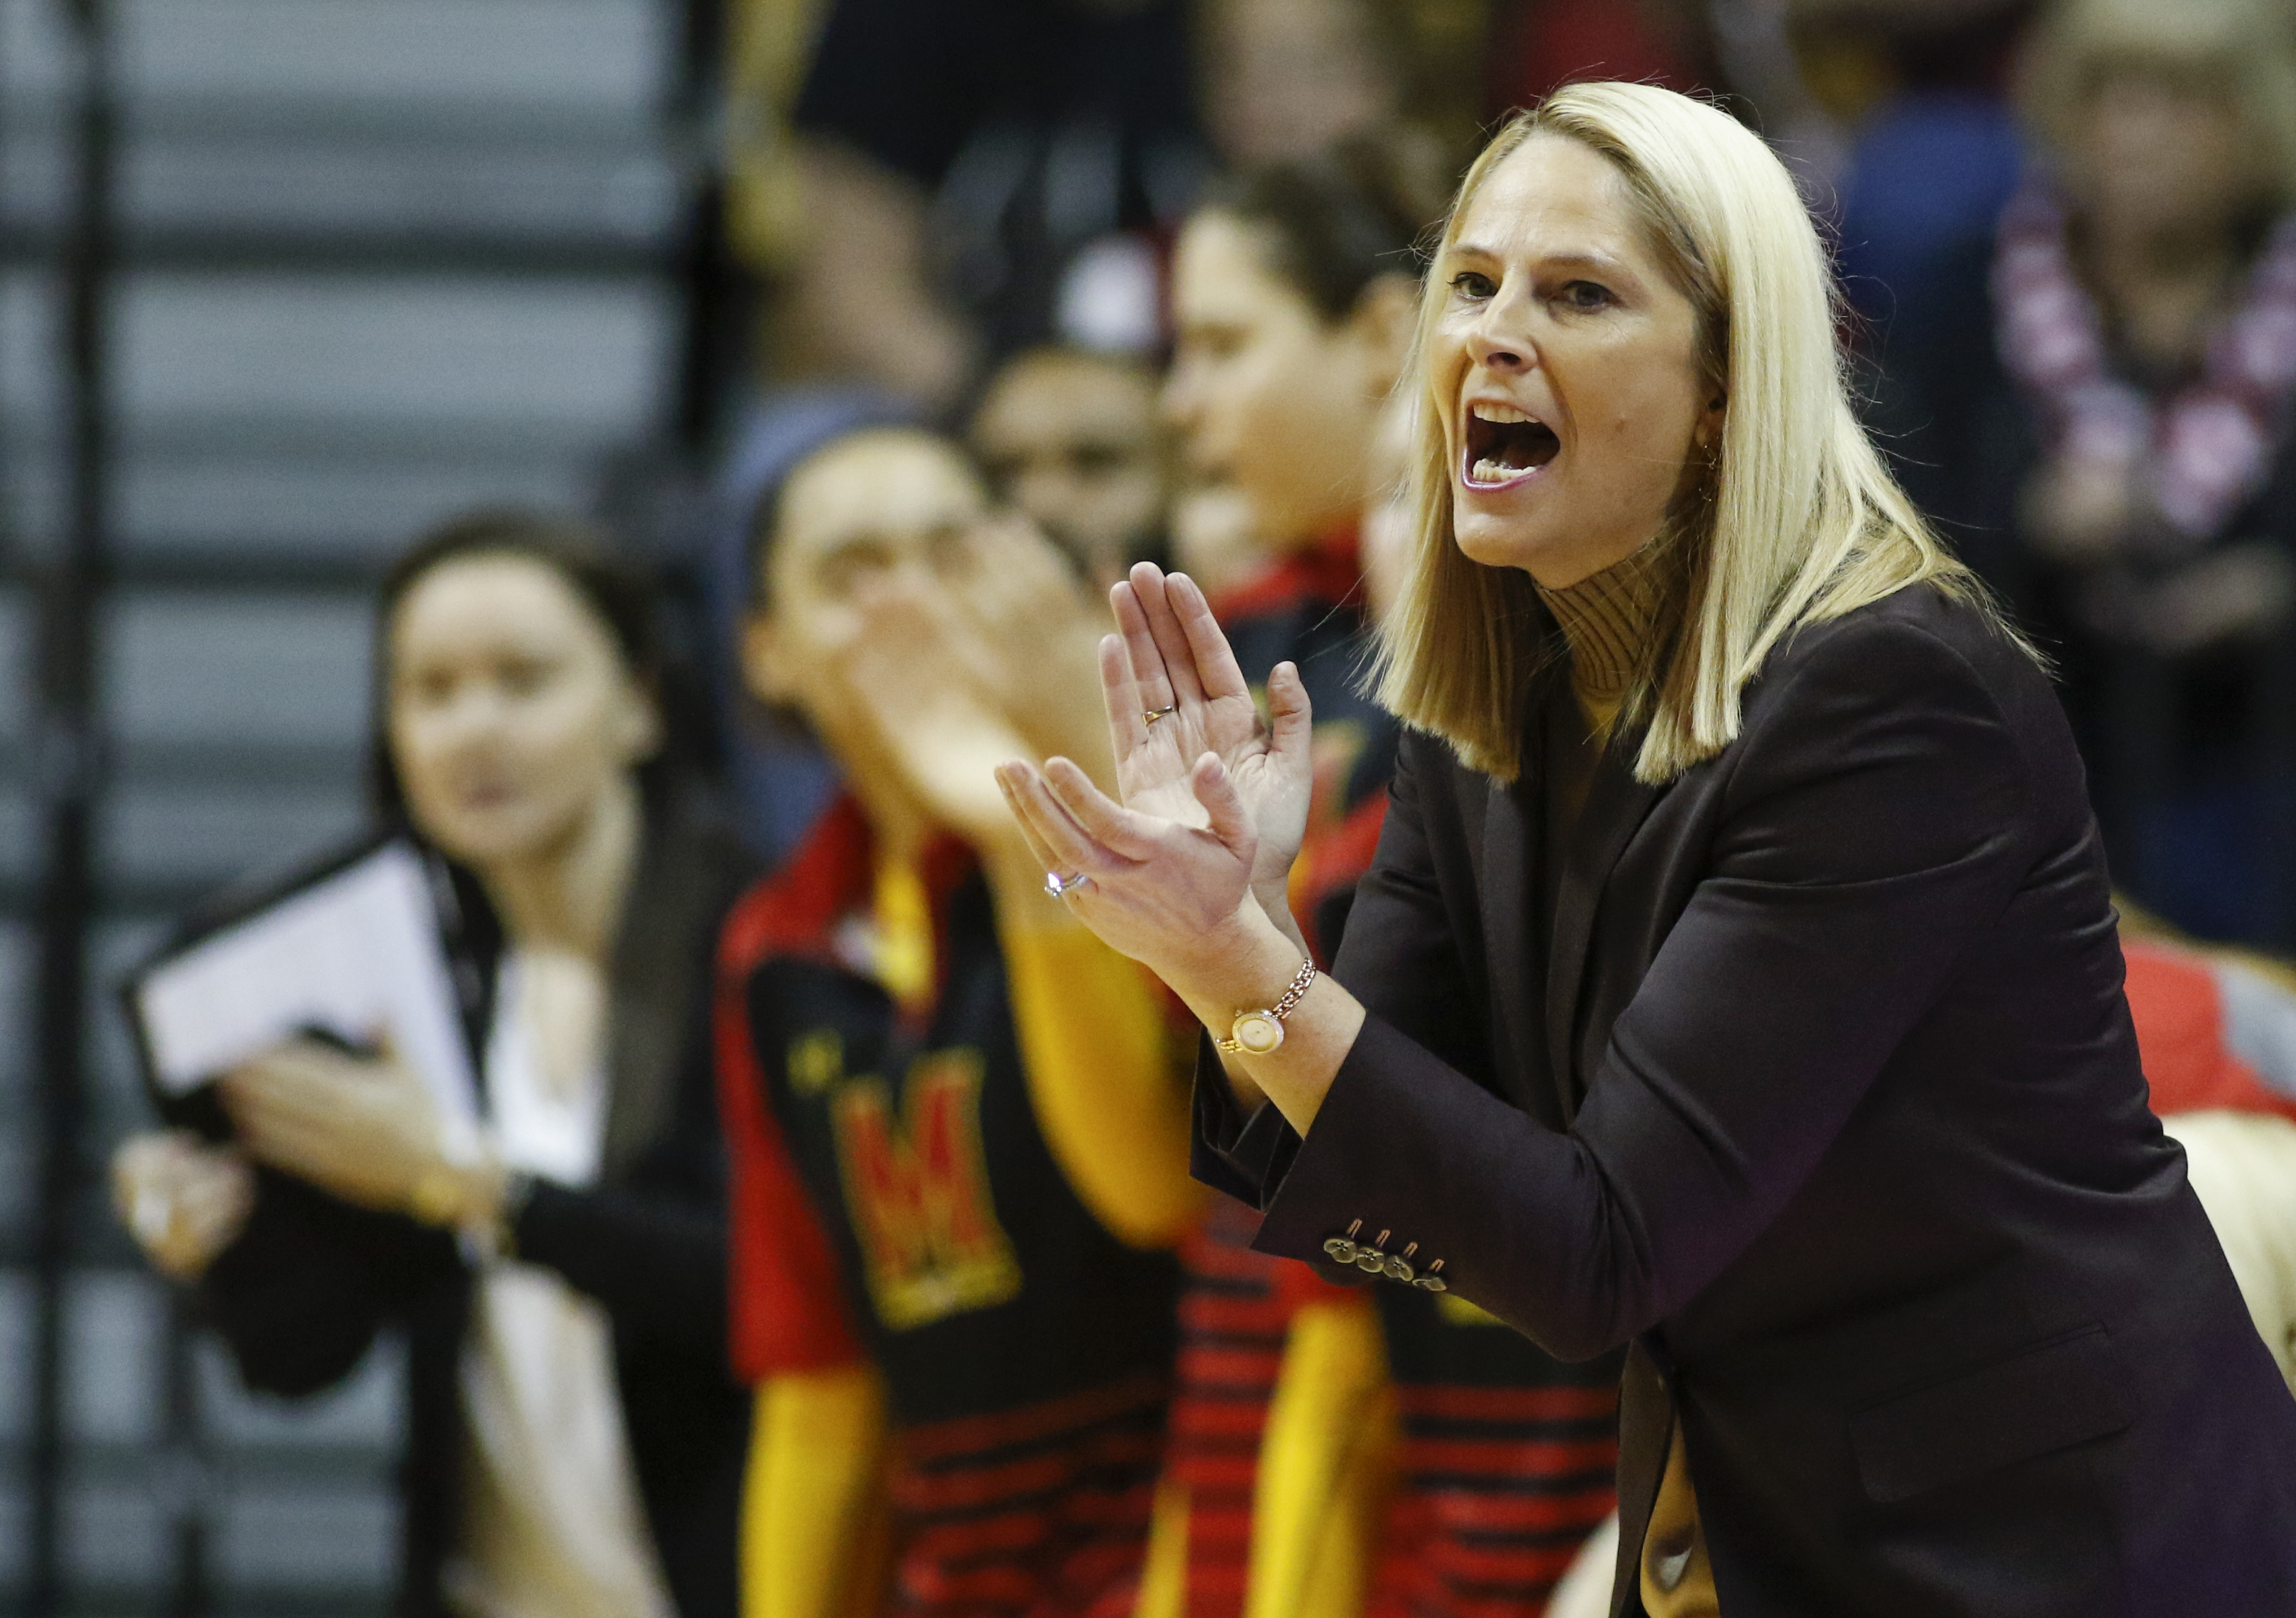 FILE - In this Sunday, Feb. 5, 2017, file photo ,Maryland head coach Brenda Frese cheers on her team during the first half of an NCAA college basketball game against Indiana in Bloomington, Ind. Ranked fourth in the country after going 30-2 and being crow